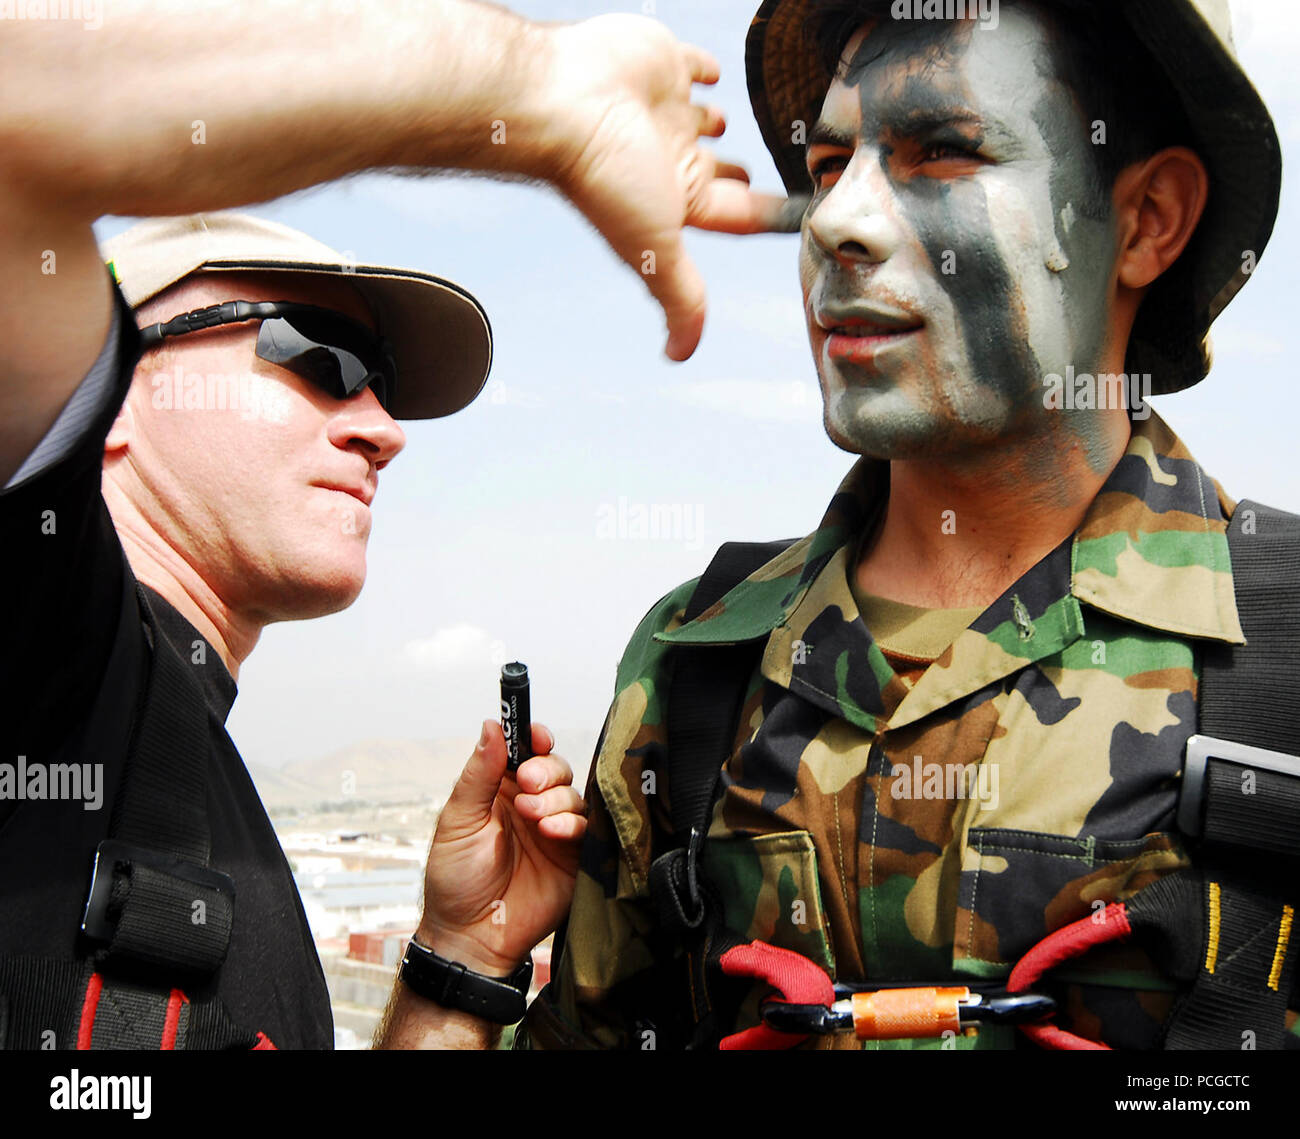 KABUL, Afghanistan (August 9, 2010)  French Army Captain Guillaume Quevarrec, left, an EPIDOTE program Afghan National Army (ANA) advisor, applies camouflage paint to the face of Afghan Captain Abdulhai, prior to a rappelling demonstration during a pre-Ramazan ceremony at Kabul Military Training Center (KMTC). ANA and visiting Coalition leaders watched security and quick response teams demonstrate their reactions to simulated insurgent attacks. Four ANA instructors at KMTC simulated a counterattack by firing blanks from the roof of a multi-story building, then rappelling down the side to aid i - Stock Image